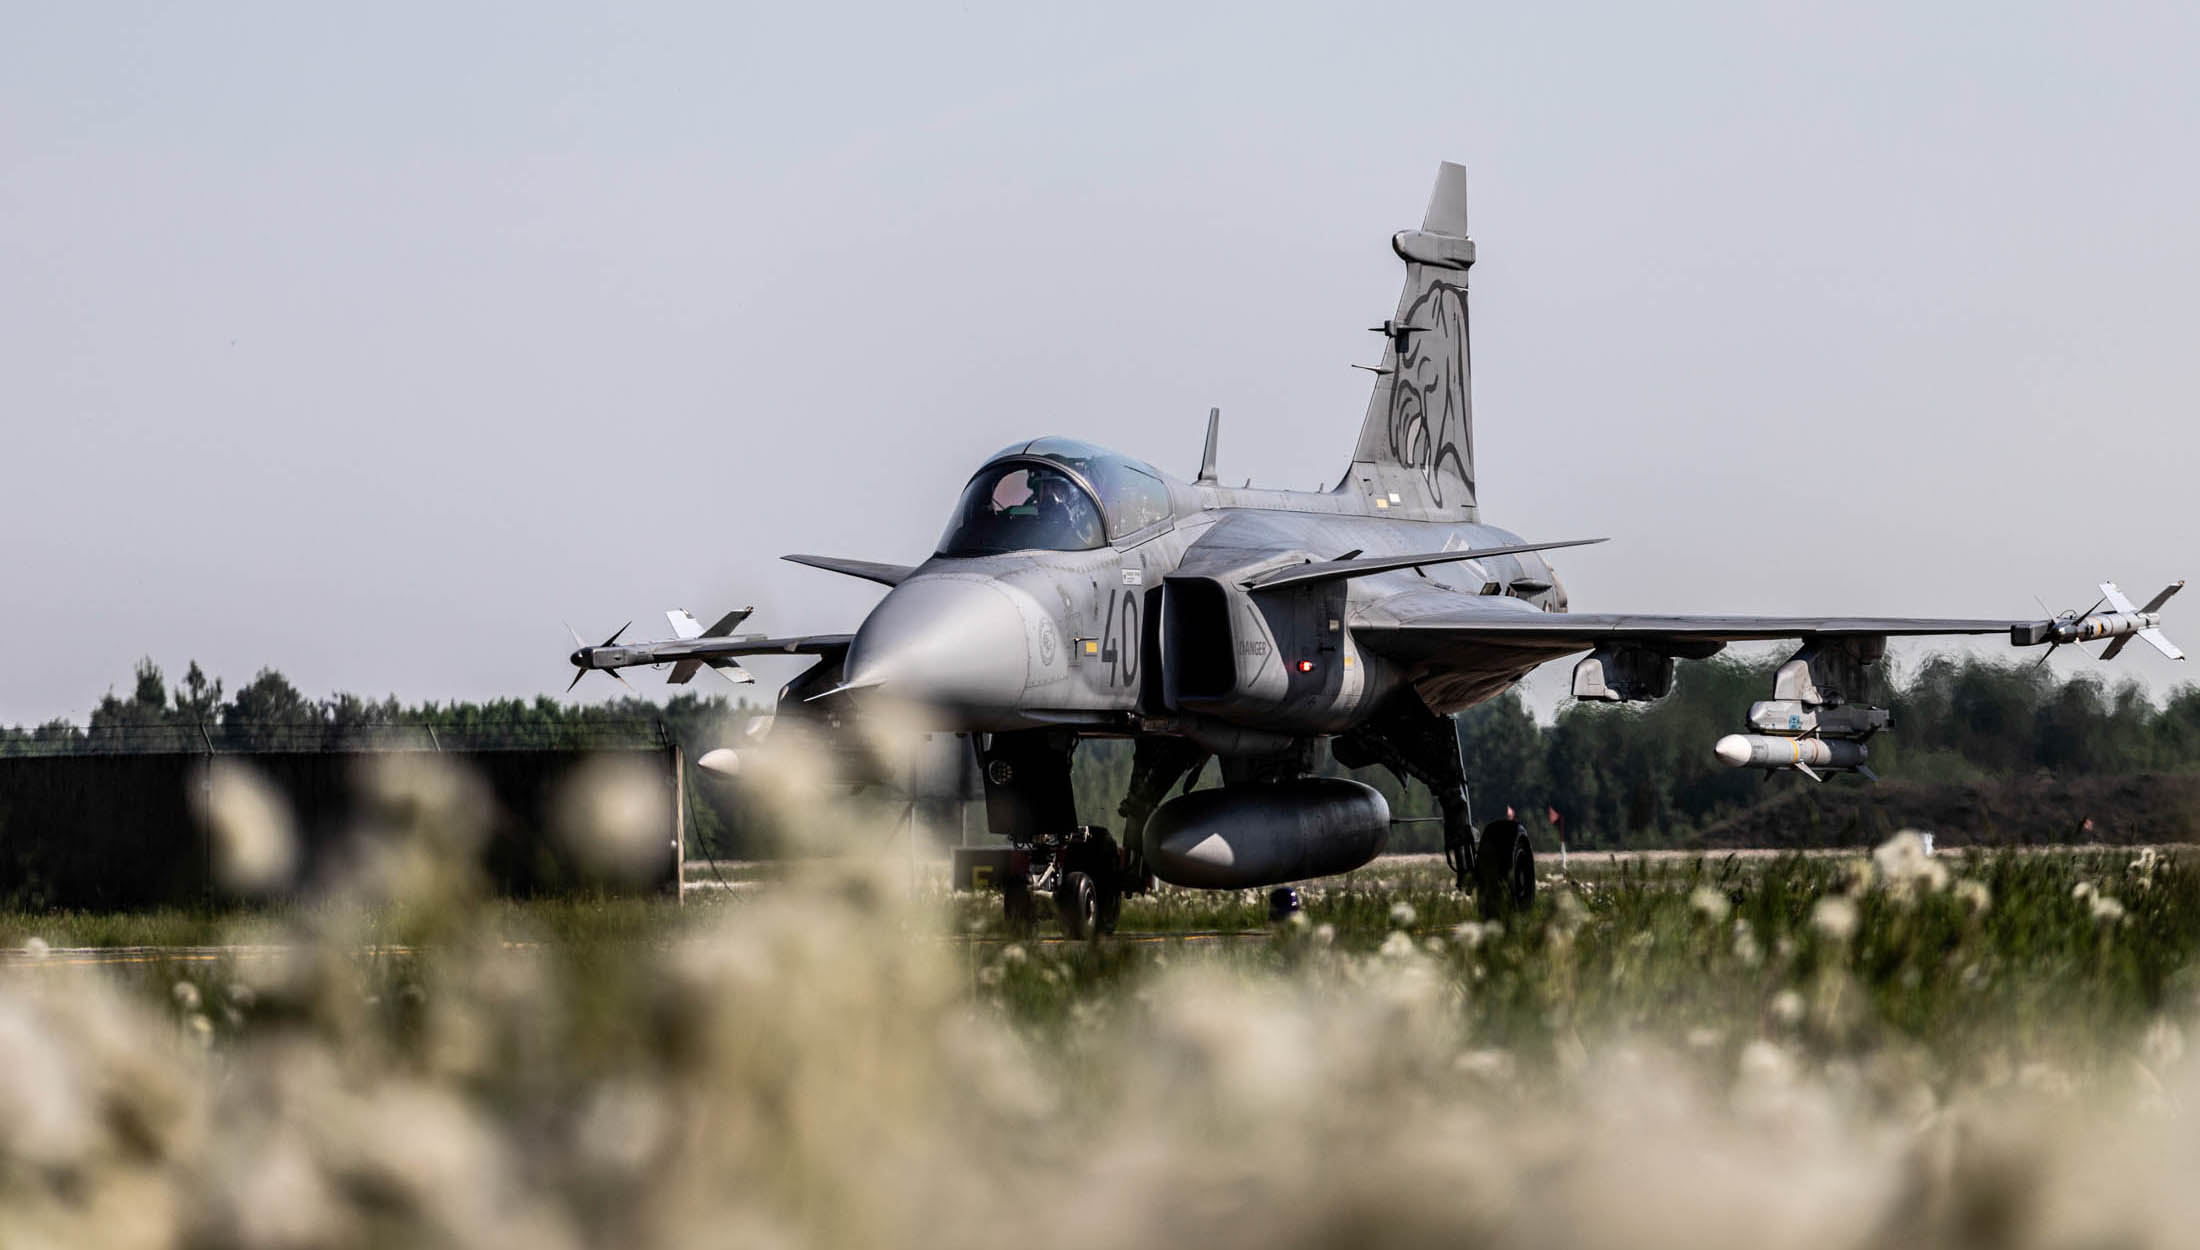 A Hungarian Air Force Gripen jet taxis after launching a training scramble in support of NATO's Baltic-based air-policing mission in May 2019. (NATO)